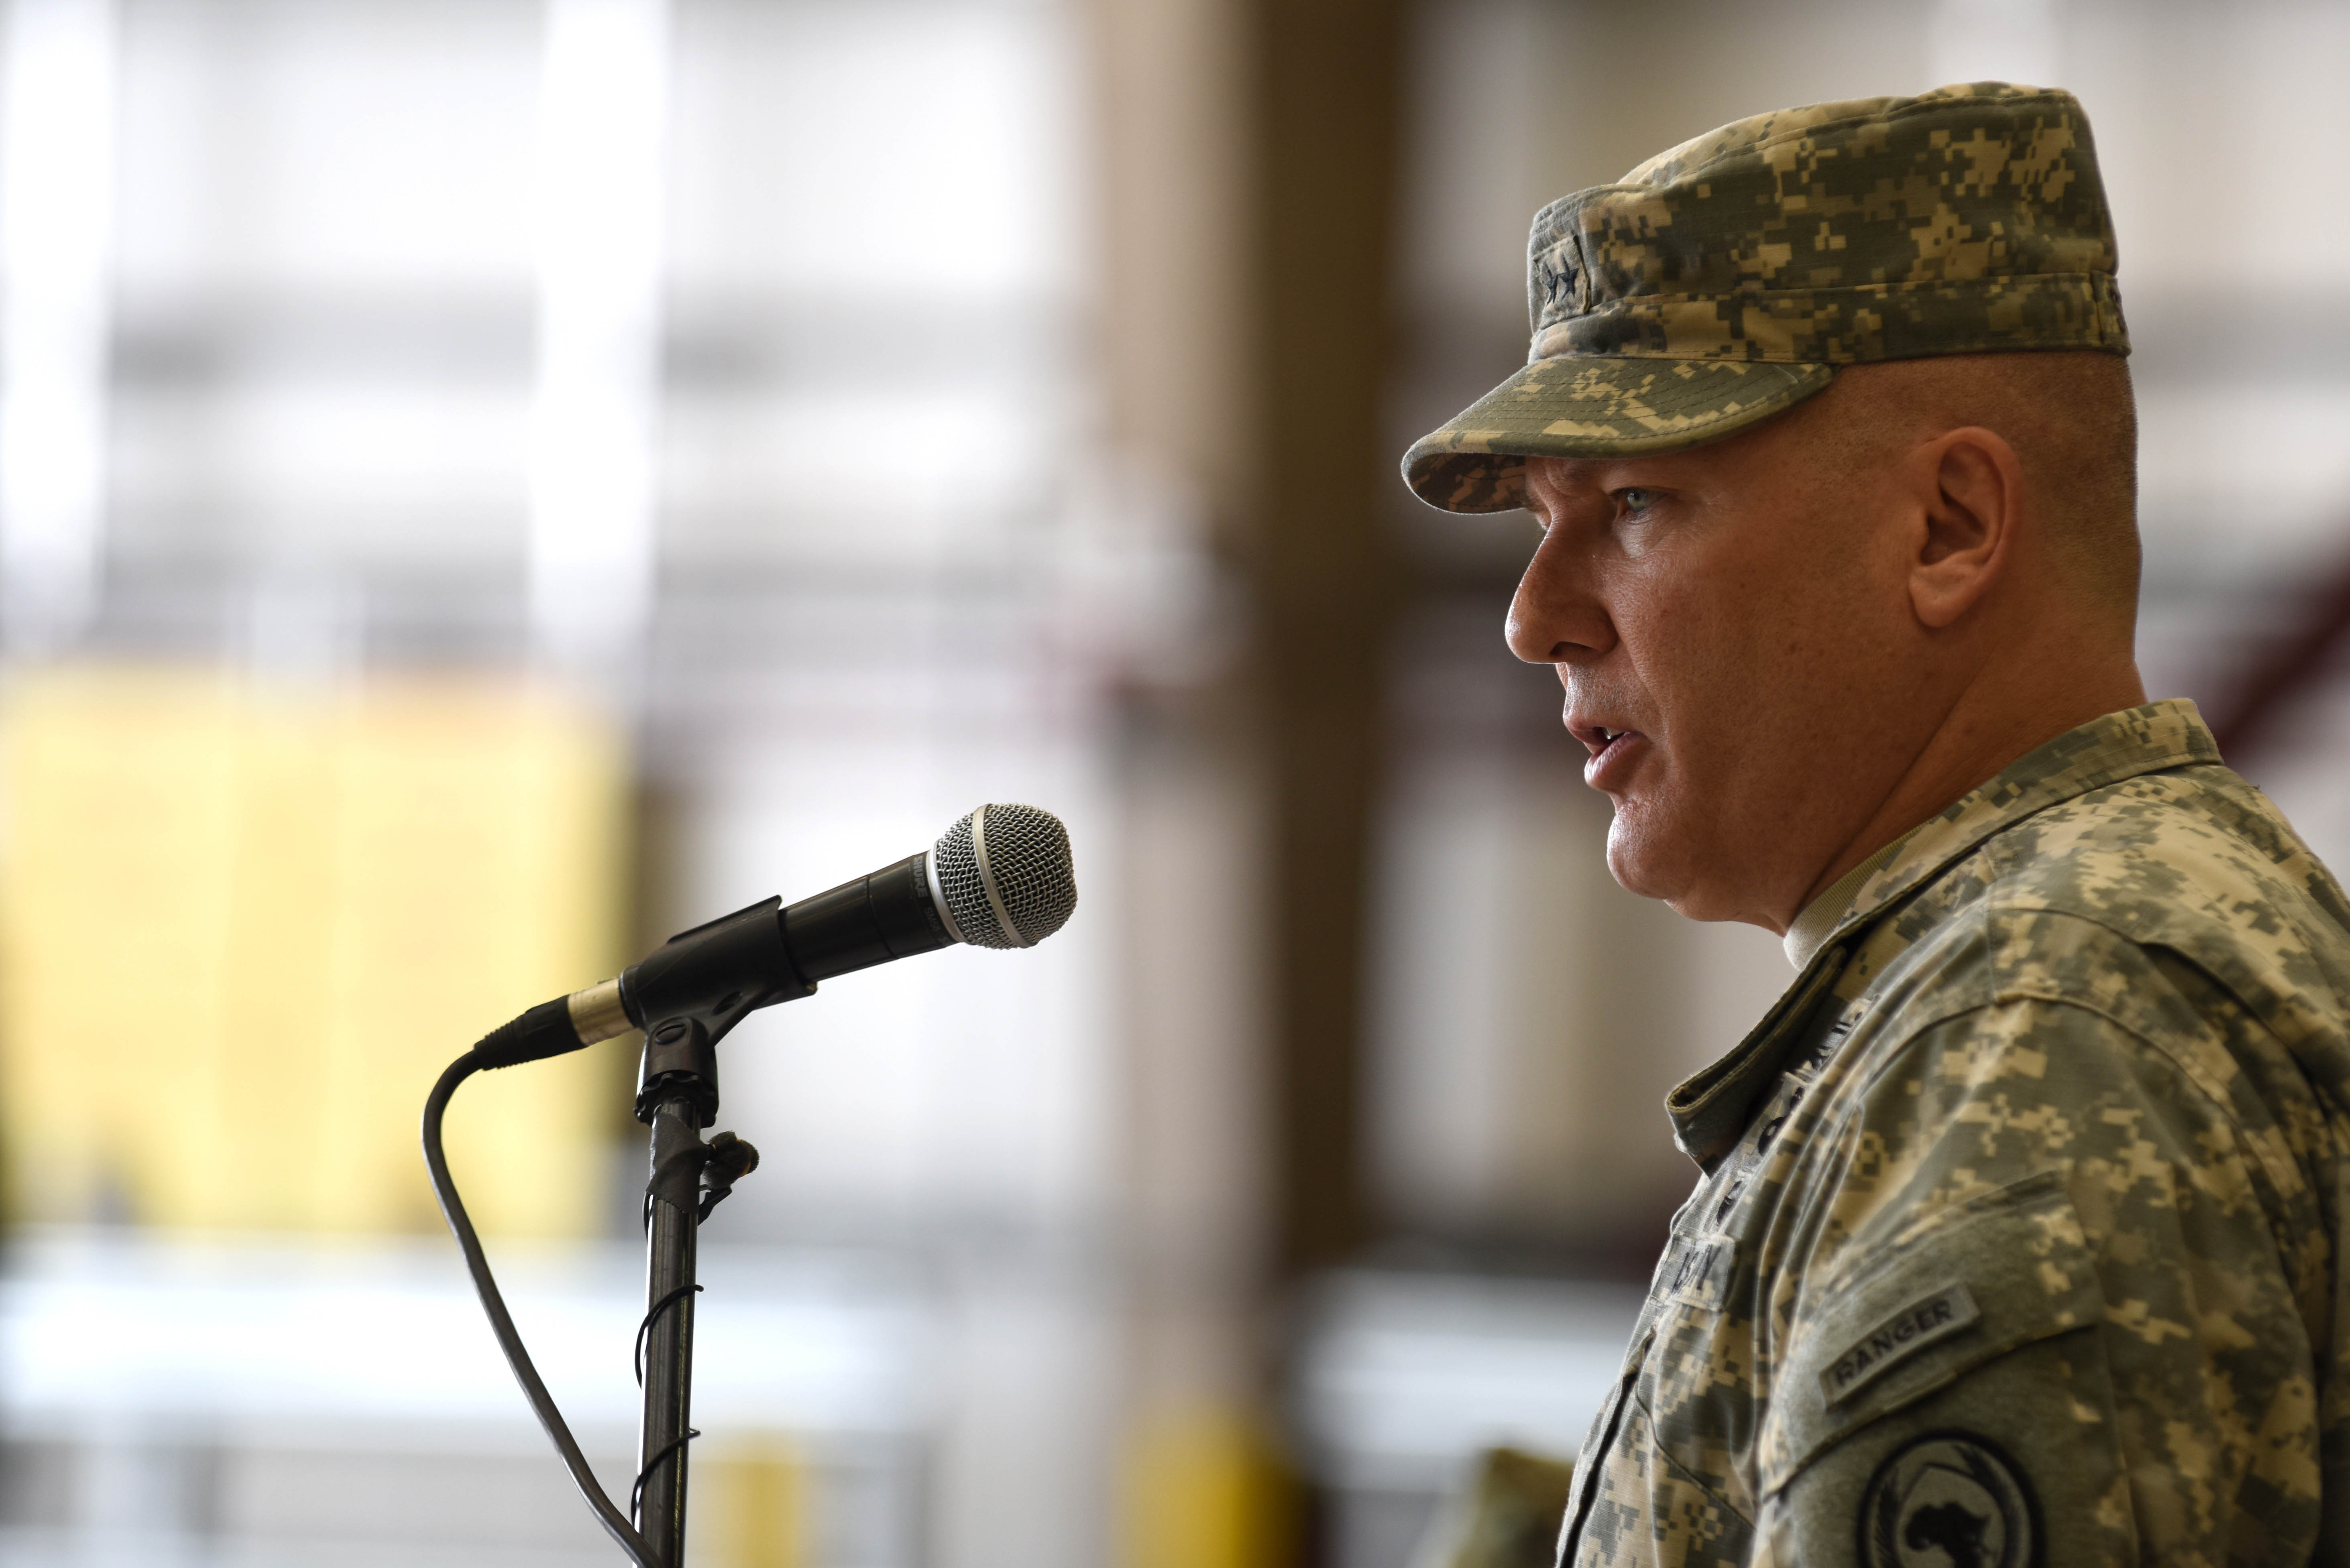 U.S. Army Maj. Gen. Mark Stammer, departing Combined Joint Task Force-Horn of Africa commanding general, speaks at a change of command ceremony April 13, 2016, at Camp Lemonnier, Djibouti. Stammer arrived at CJTF-HOA a year ago and will now be the deputy commander of the I Corps at Joint Base Lewis-McChord, Wash. (U.S. Air Force photo by Staff Sgt. Kate Thornton)